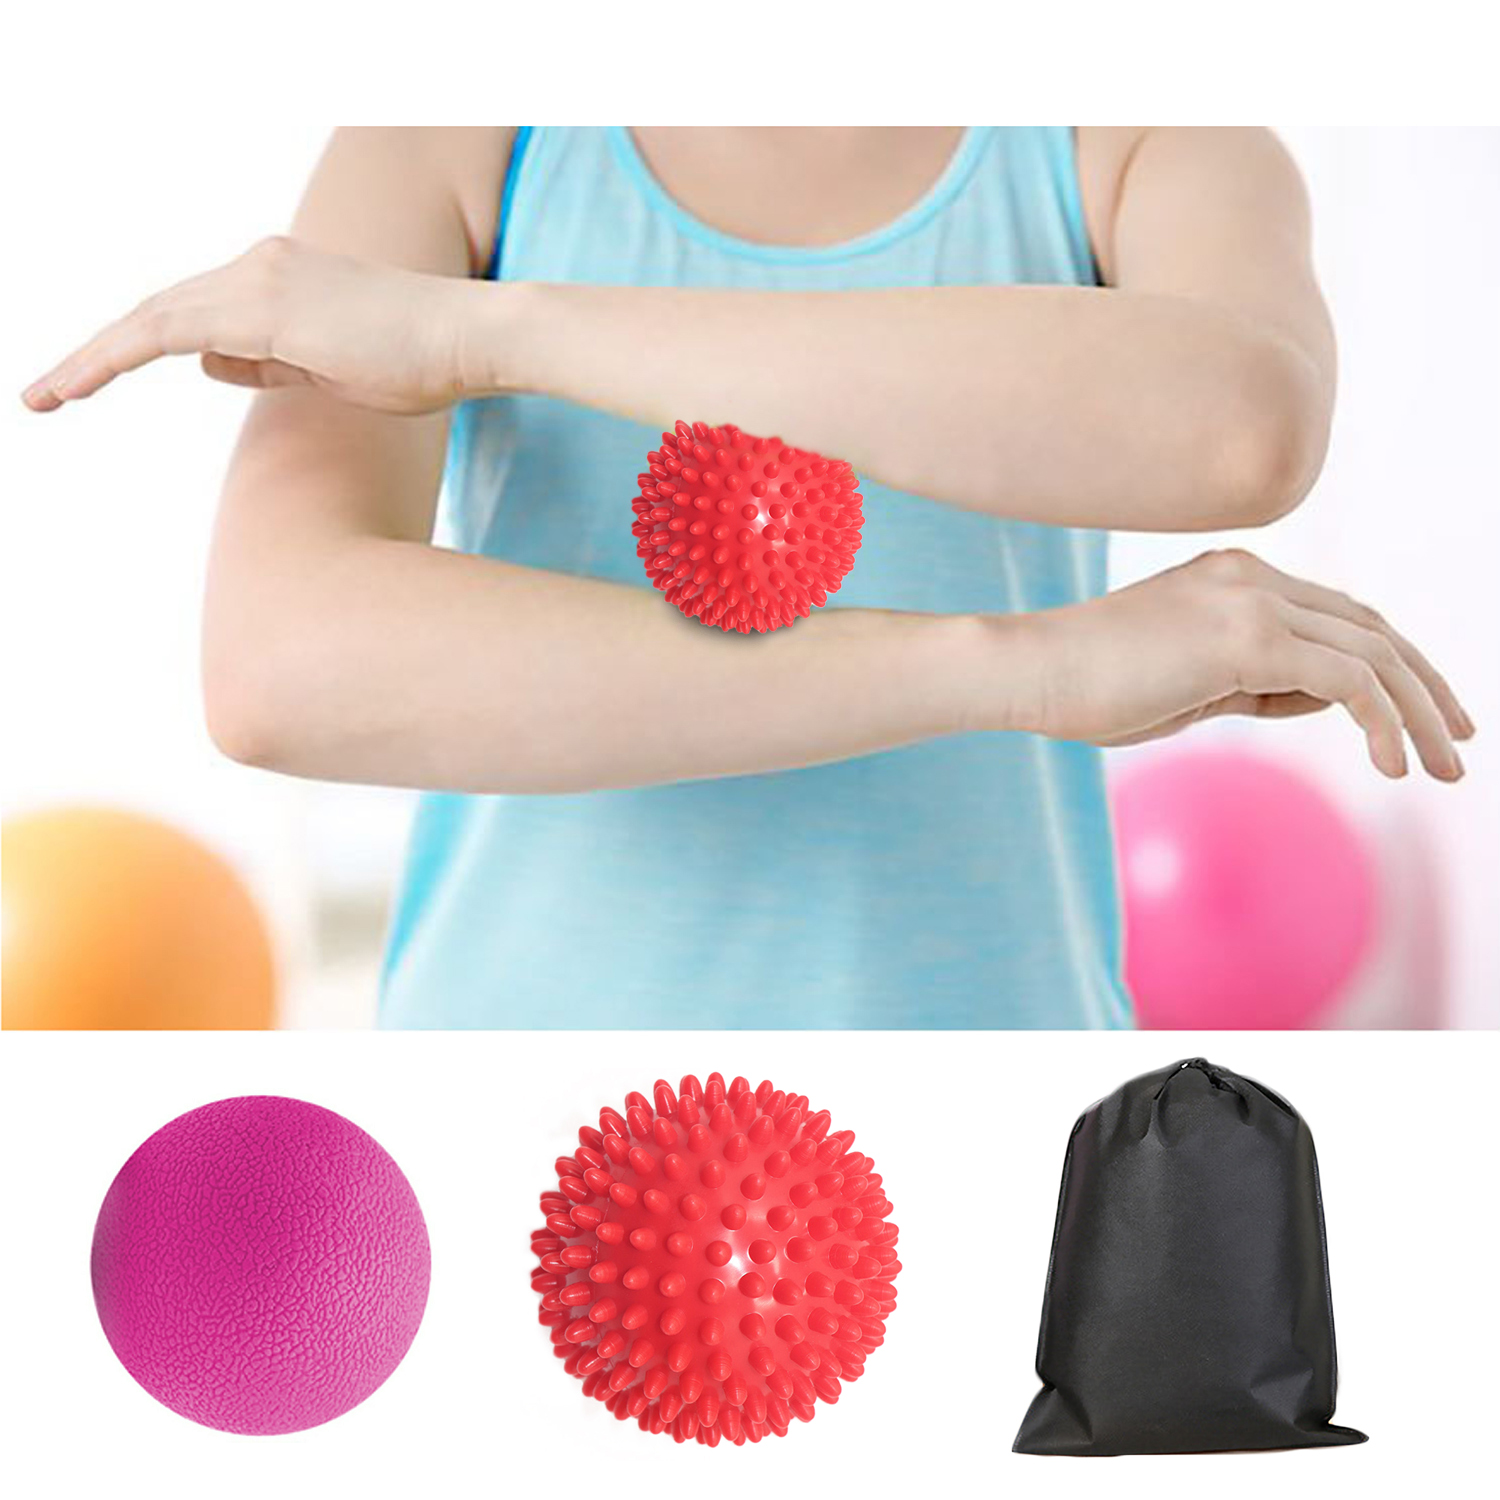 1Pcs Massage Ball + 1 Pcs Spike Roller Ball Massager With Storage Bag For Muscle Knots Myofascial Release Trigger Point Therapy